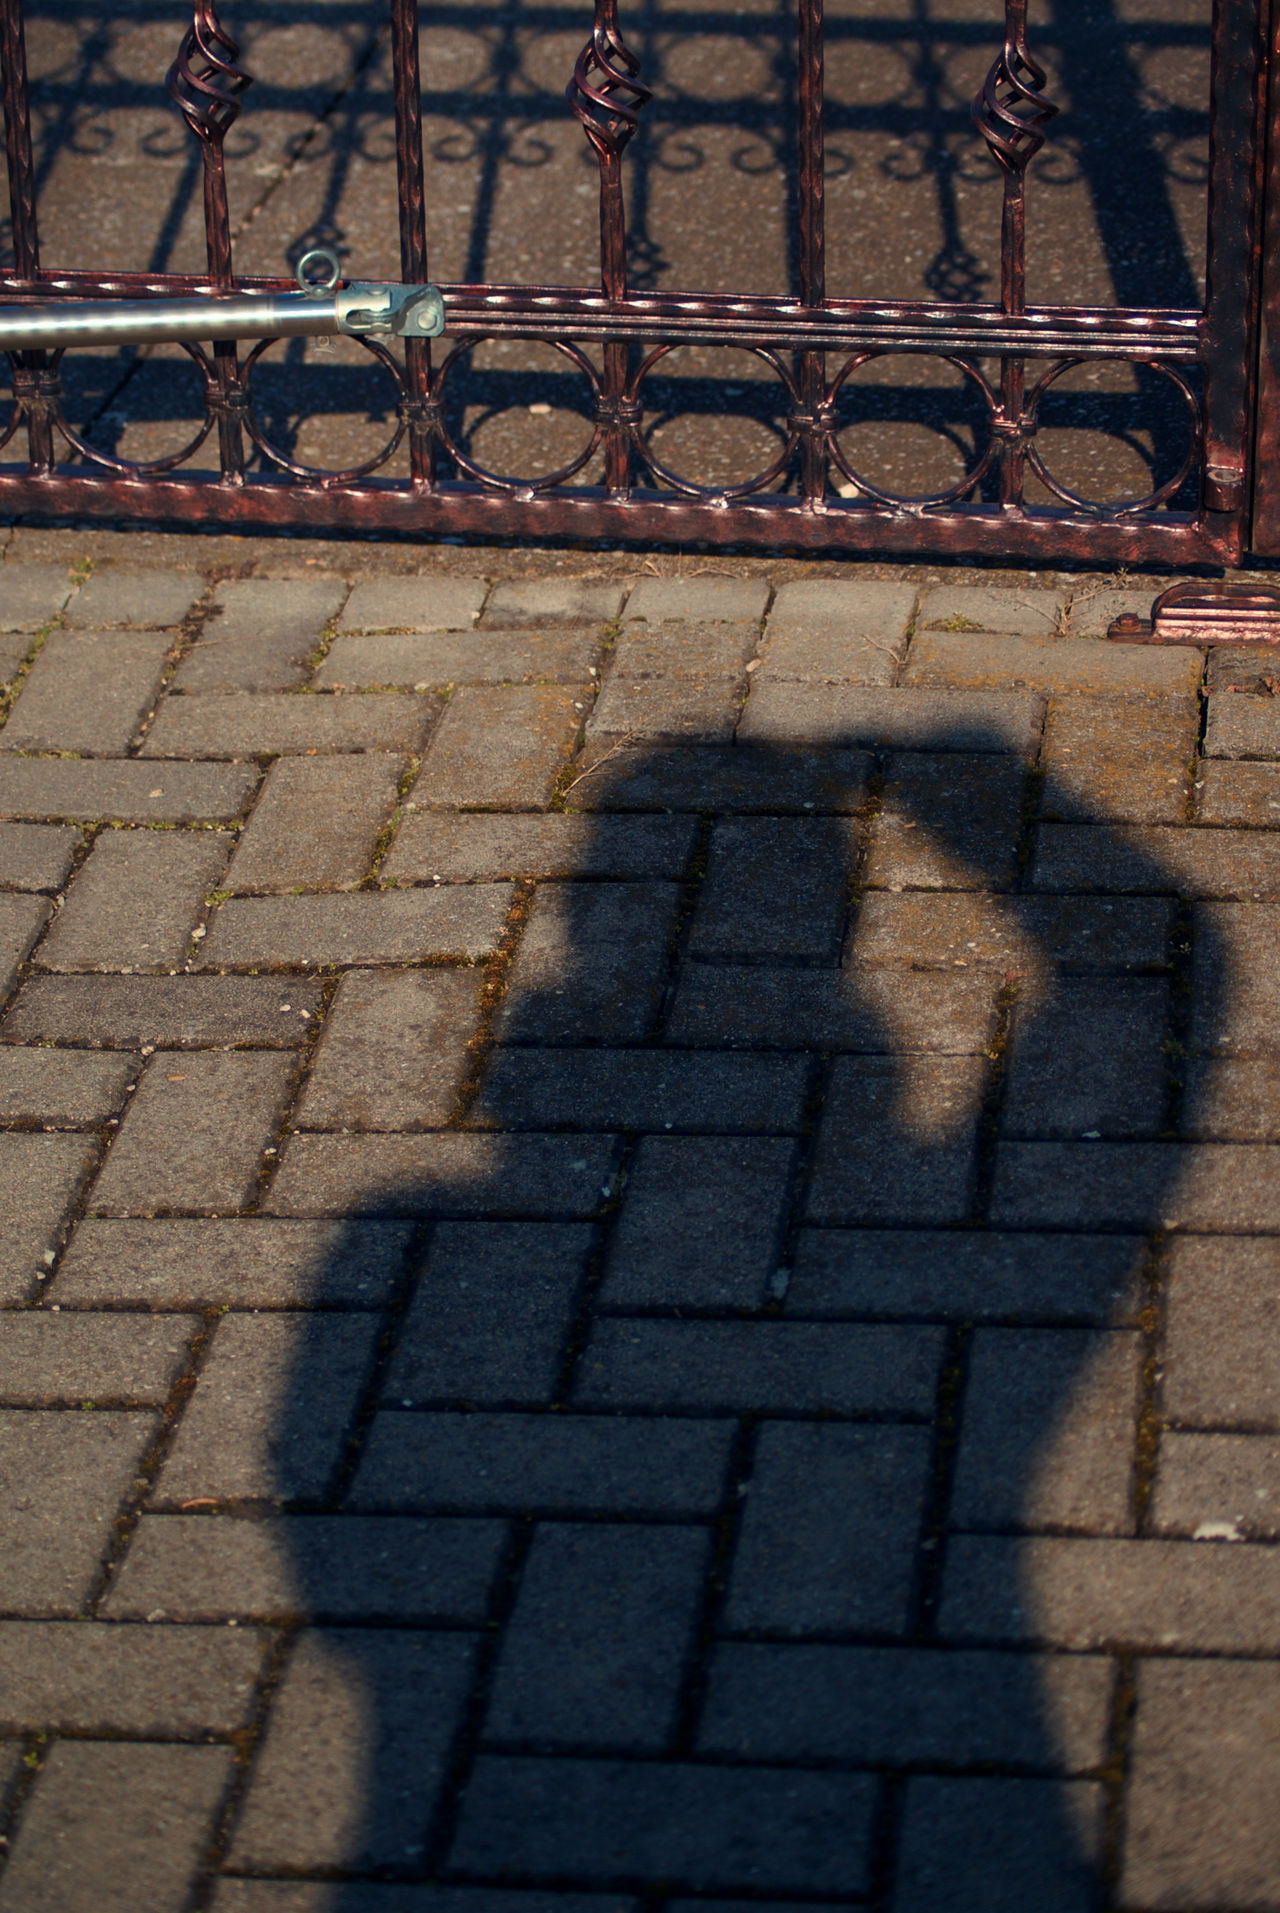 Shadow selfie :-) Little fun with the shadows and lights. Close-up Day Fence Outdoors Pattern Pavement Pavement Patterns Photgrapher Photographer In The Shot Selfie Shadow Shadow And Light Shadow Selfie Shadows & Lights Urban Life Wrought Iron The City Light Left Handed